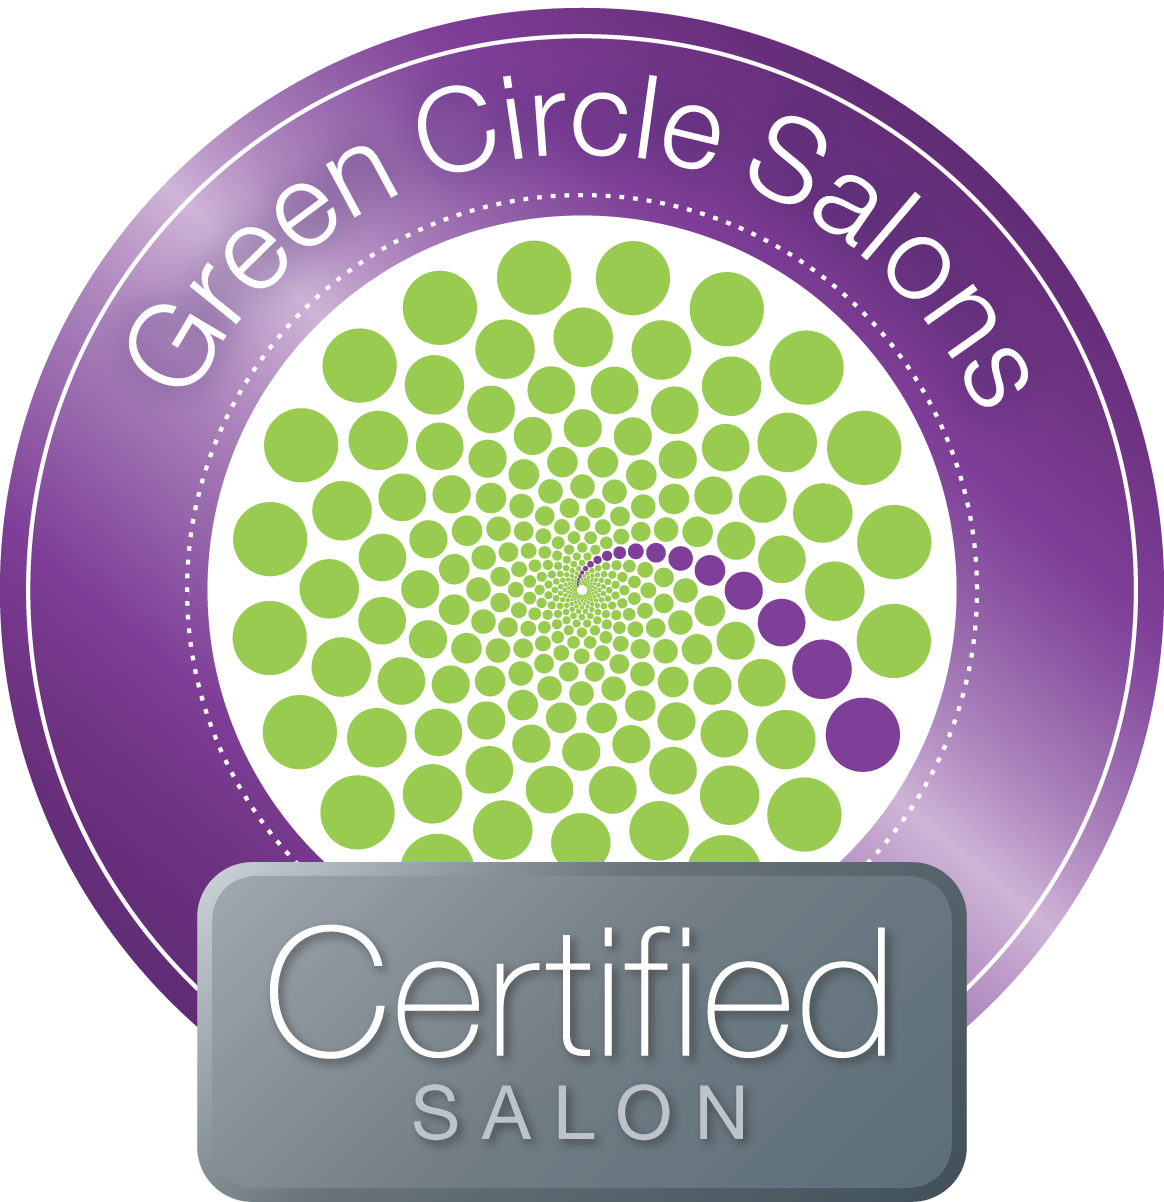 - Green Circle Salons is comprised of a collection of salons that send everyday by-products like hair clippings, aluminum foils, color tubes and applicators for innovative reuse and environmentally-friendly recycling.Through this partnership, we are committed to keeping people and our planet beautiful, by diverting 95% of our salon's waste away from the landfill.